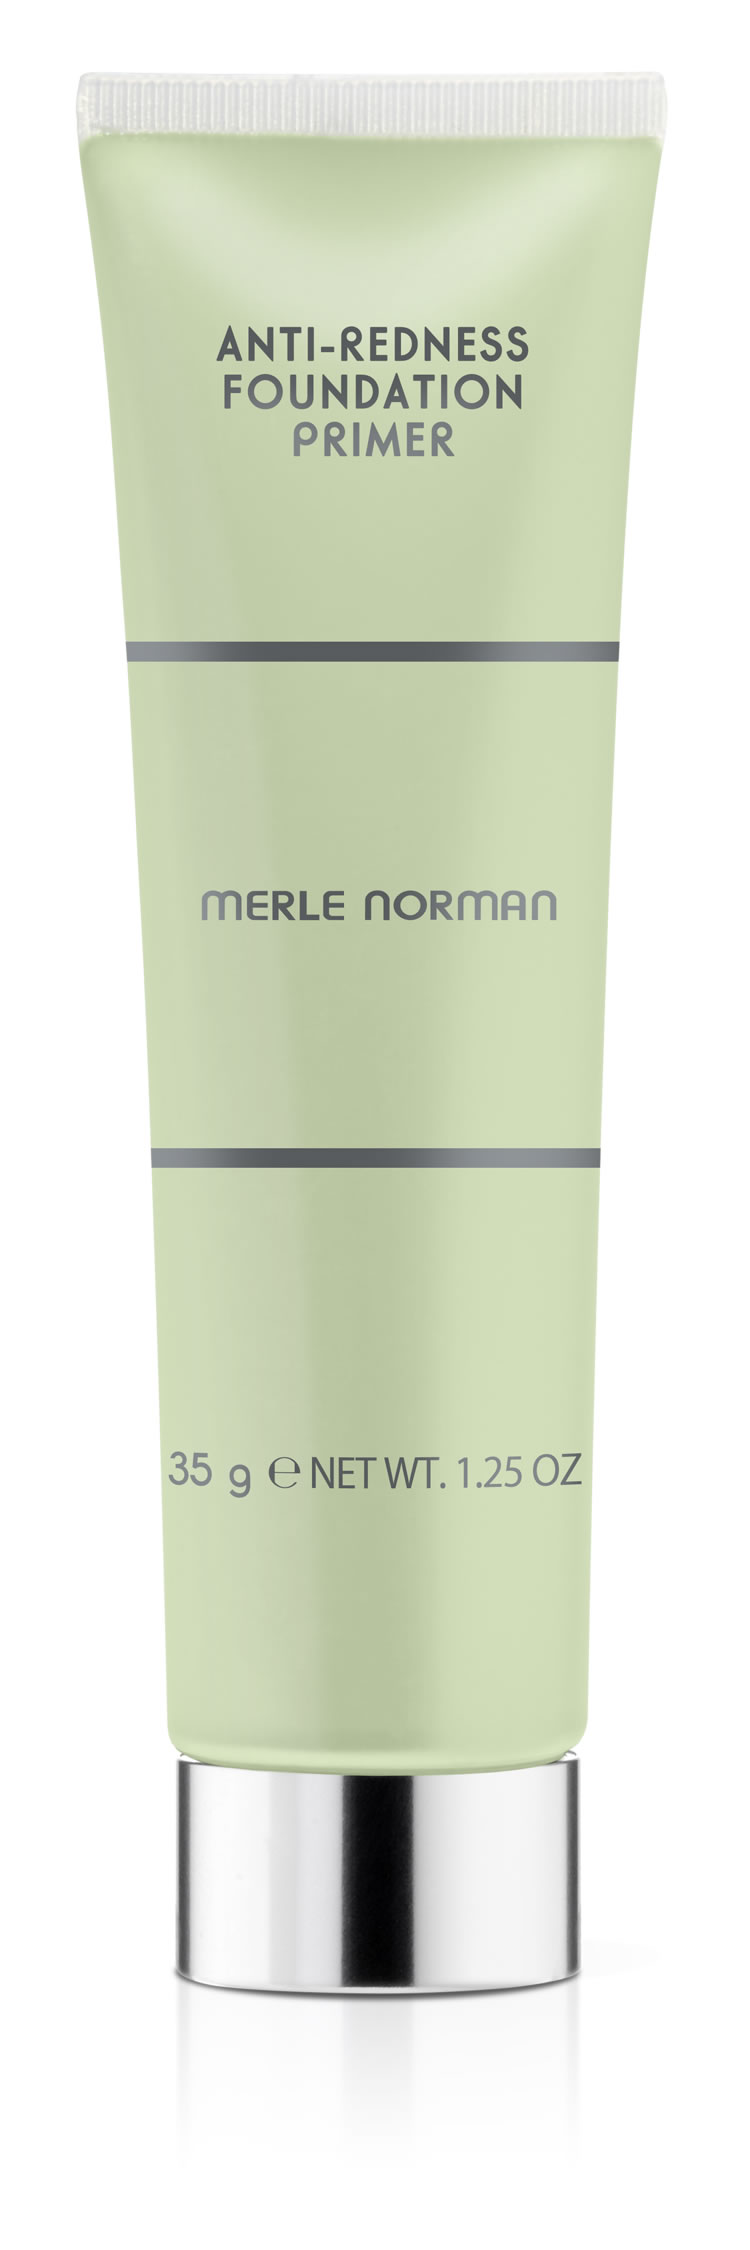 Love this new foundation primer for sensitive skin. Corrects color and leaves skin feeling smoother.